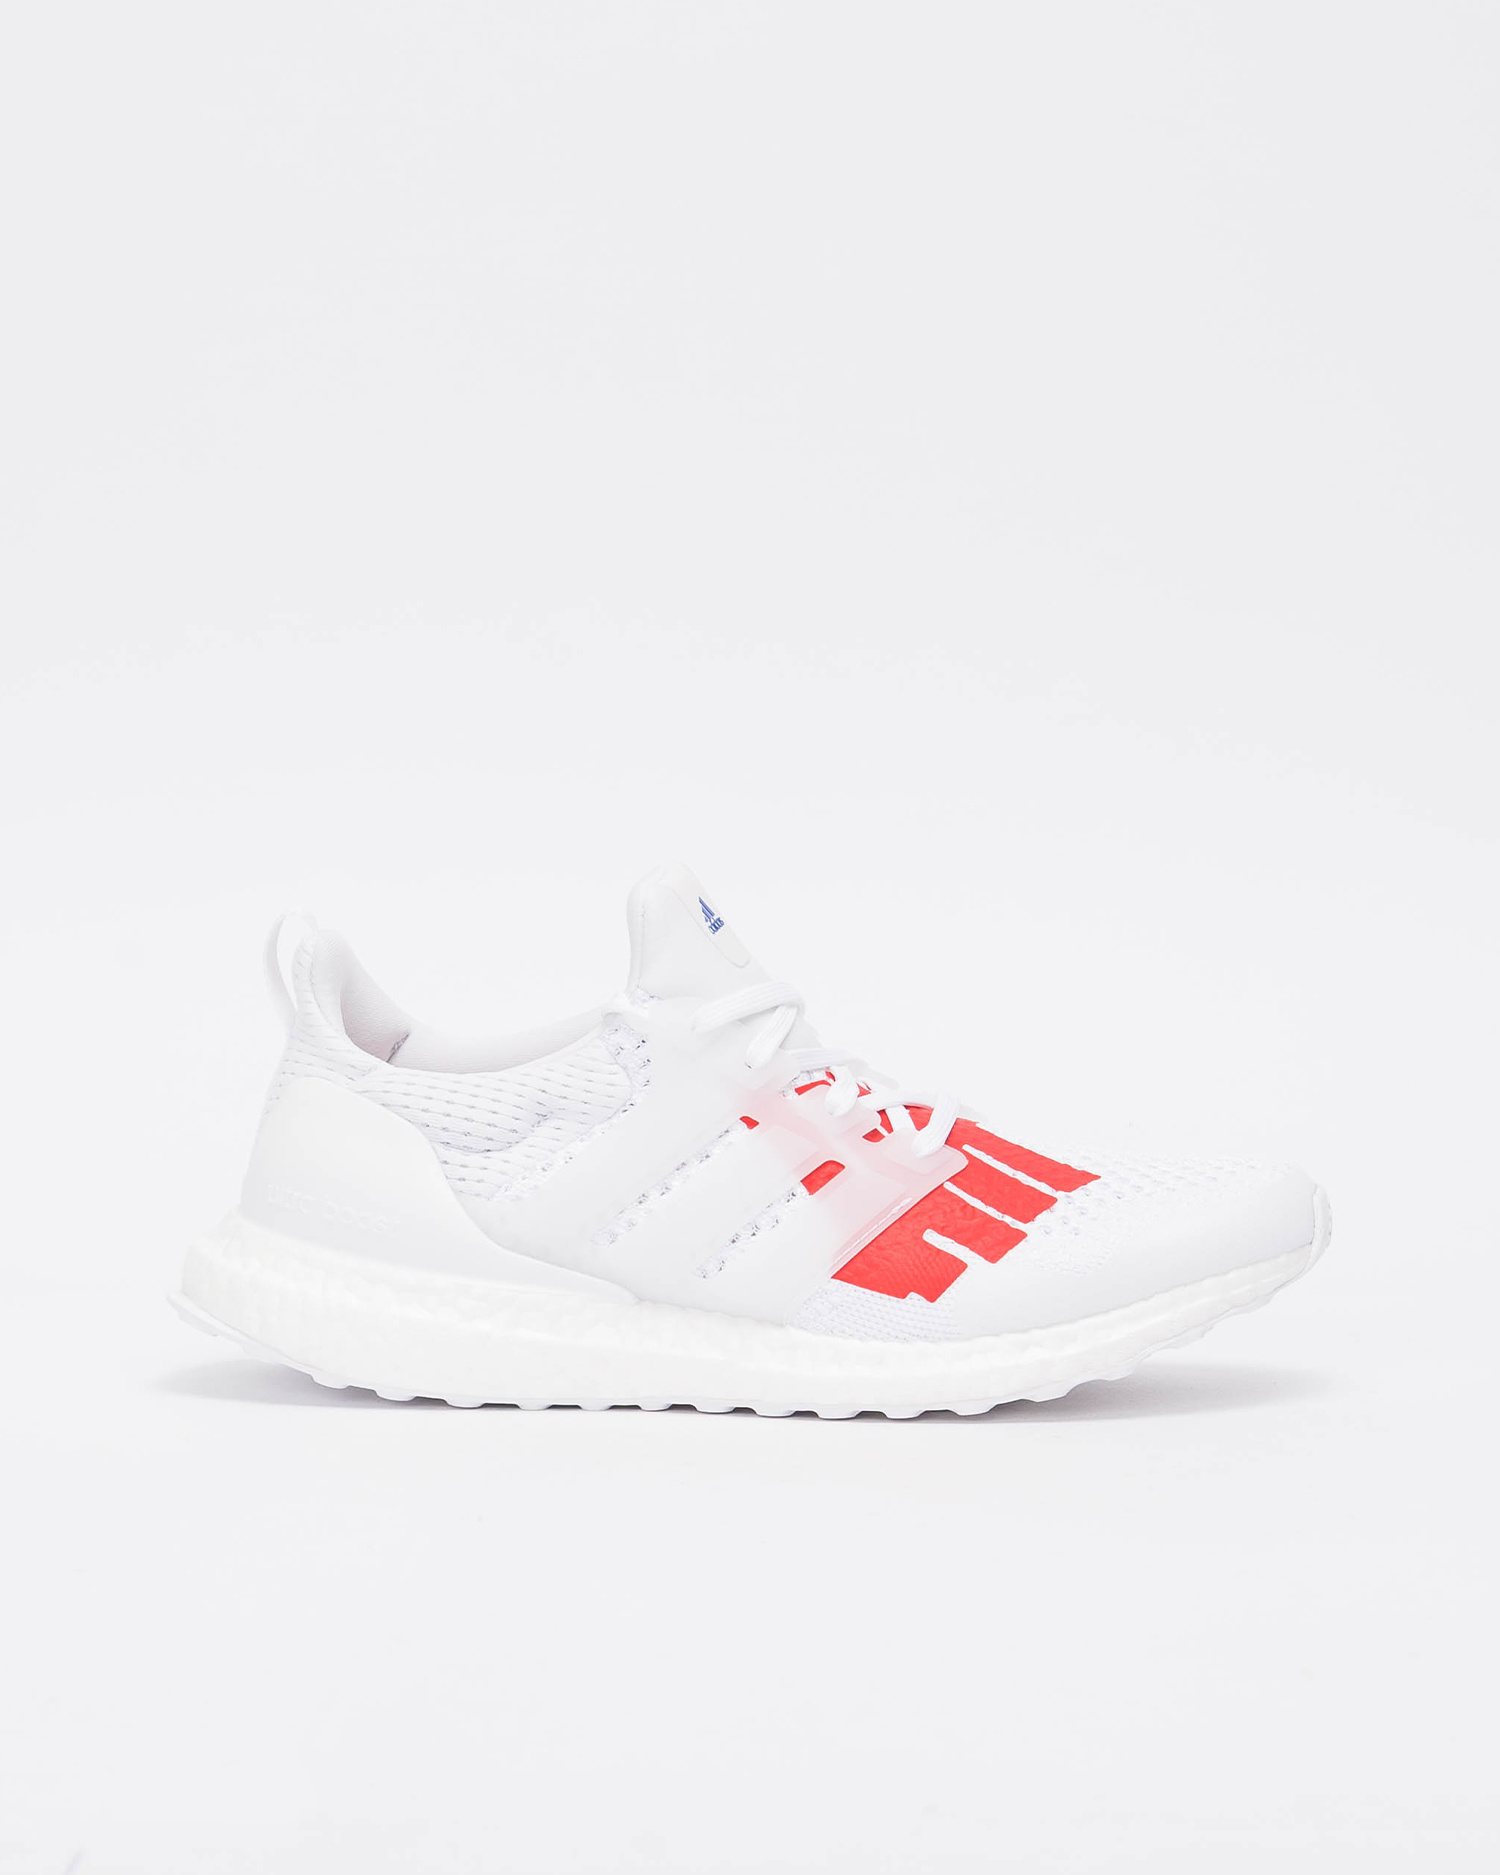 Adidas Ultraboost UNDFTD_White/Red-Blue